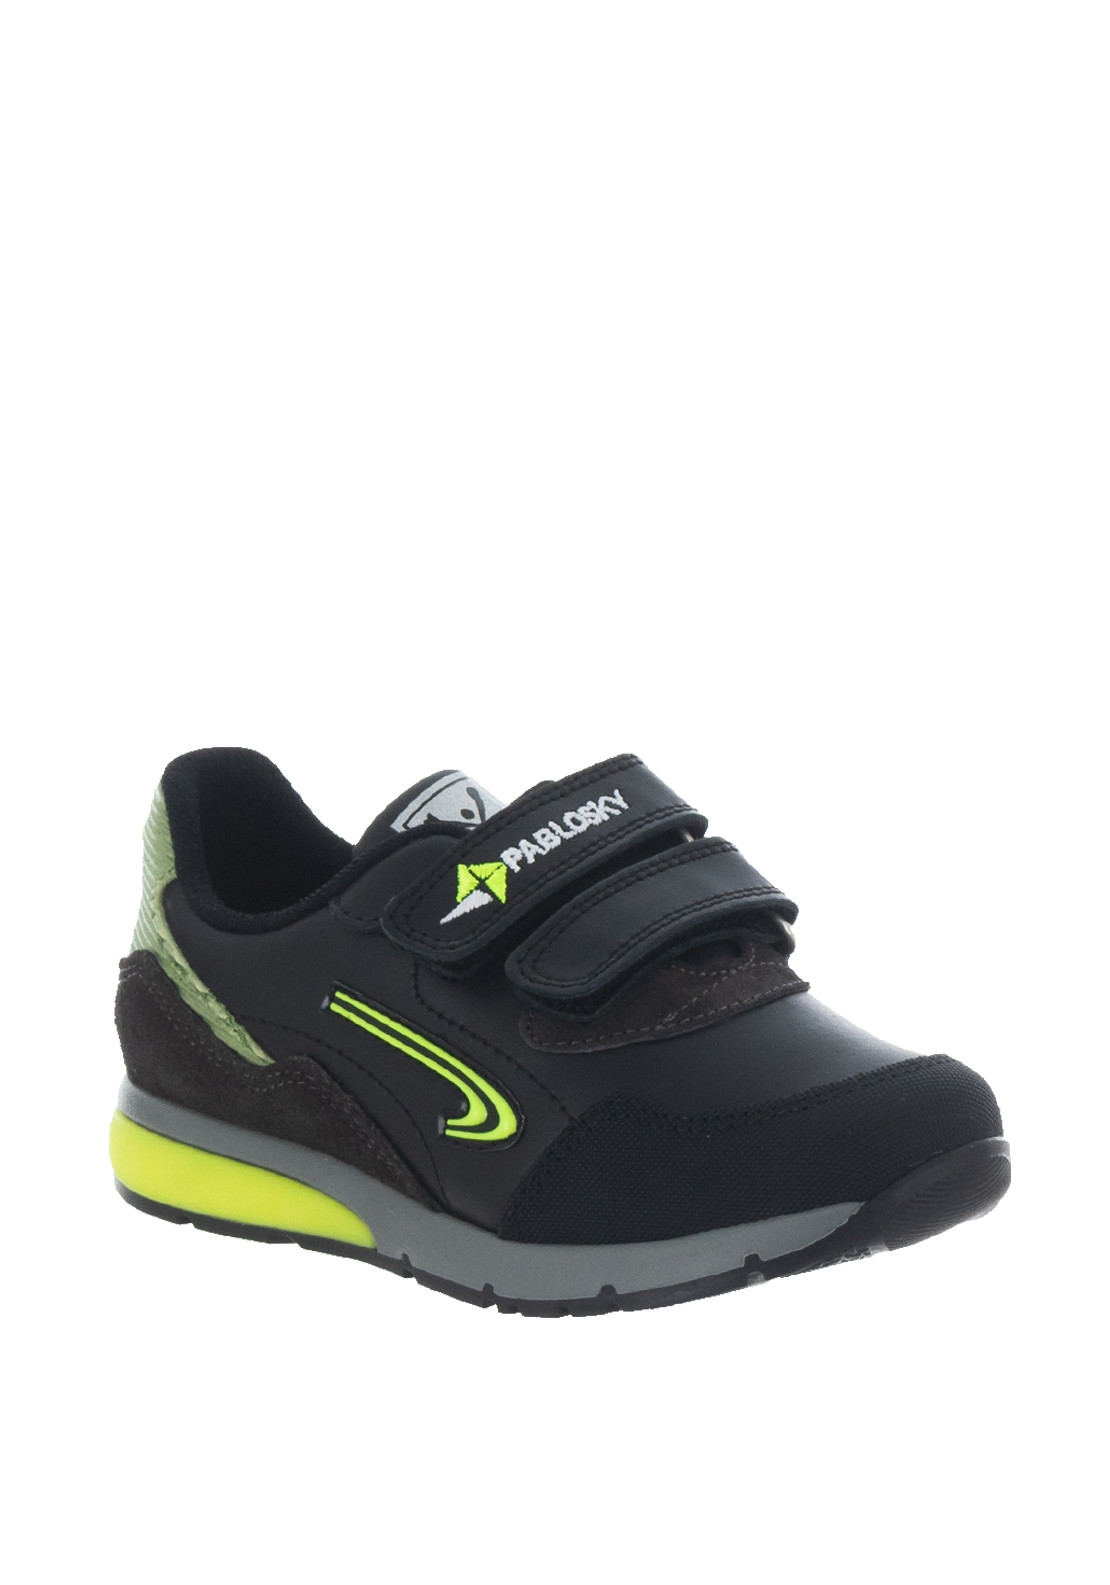 Pablosky Boys Velcro Strap Trainers, Black & Green